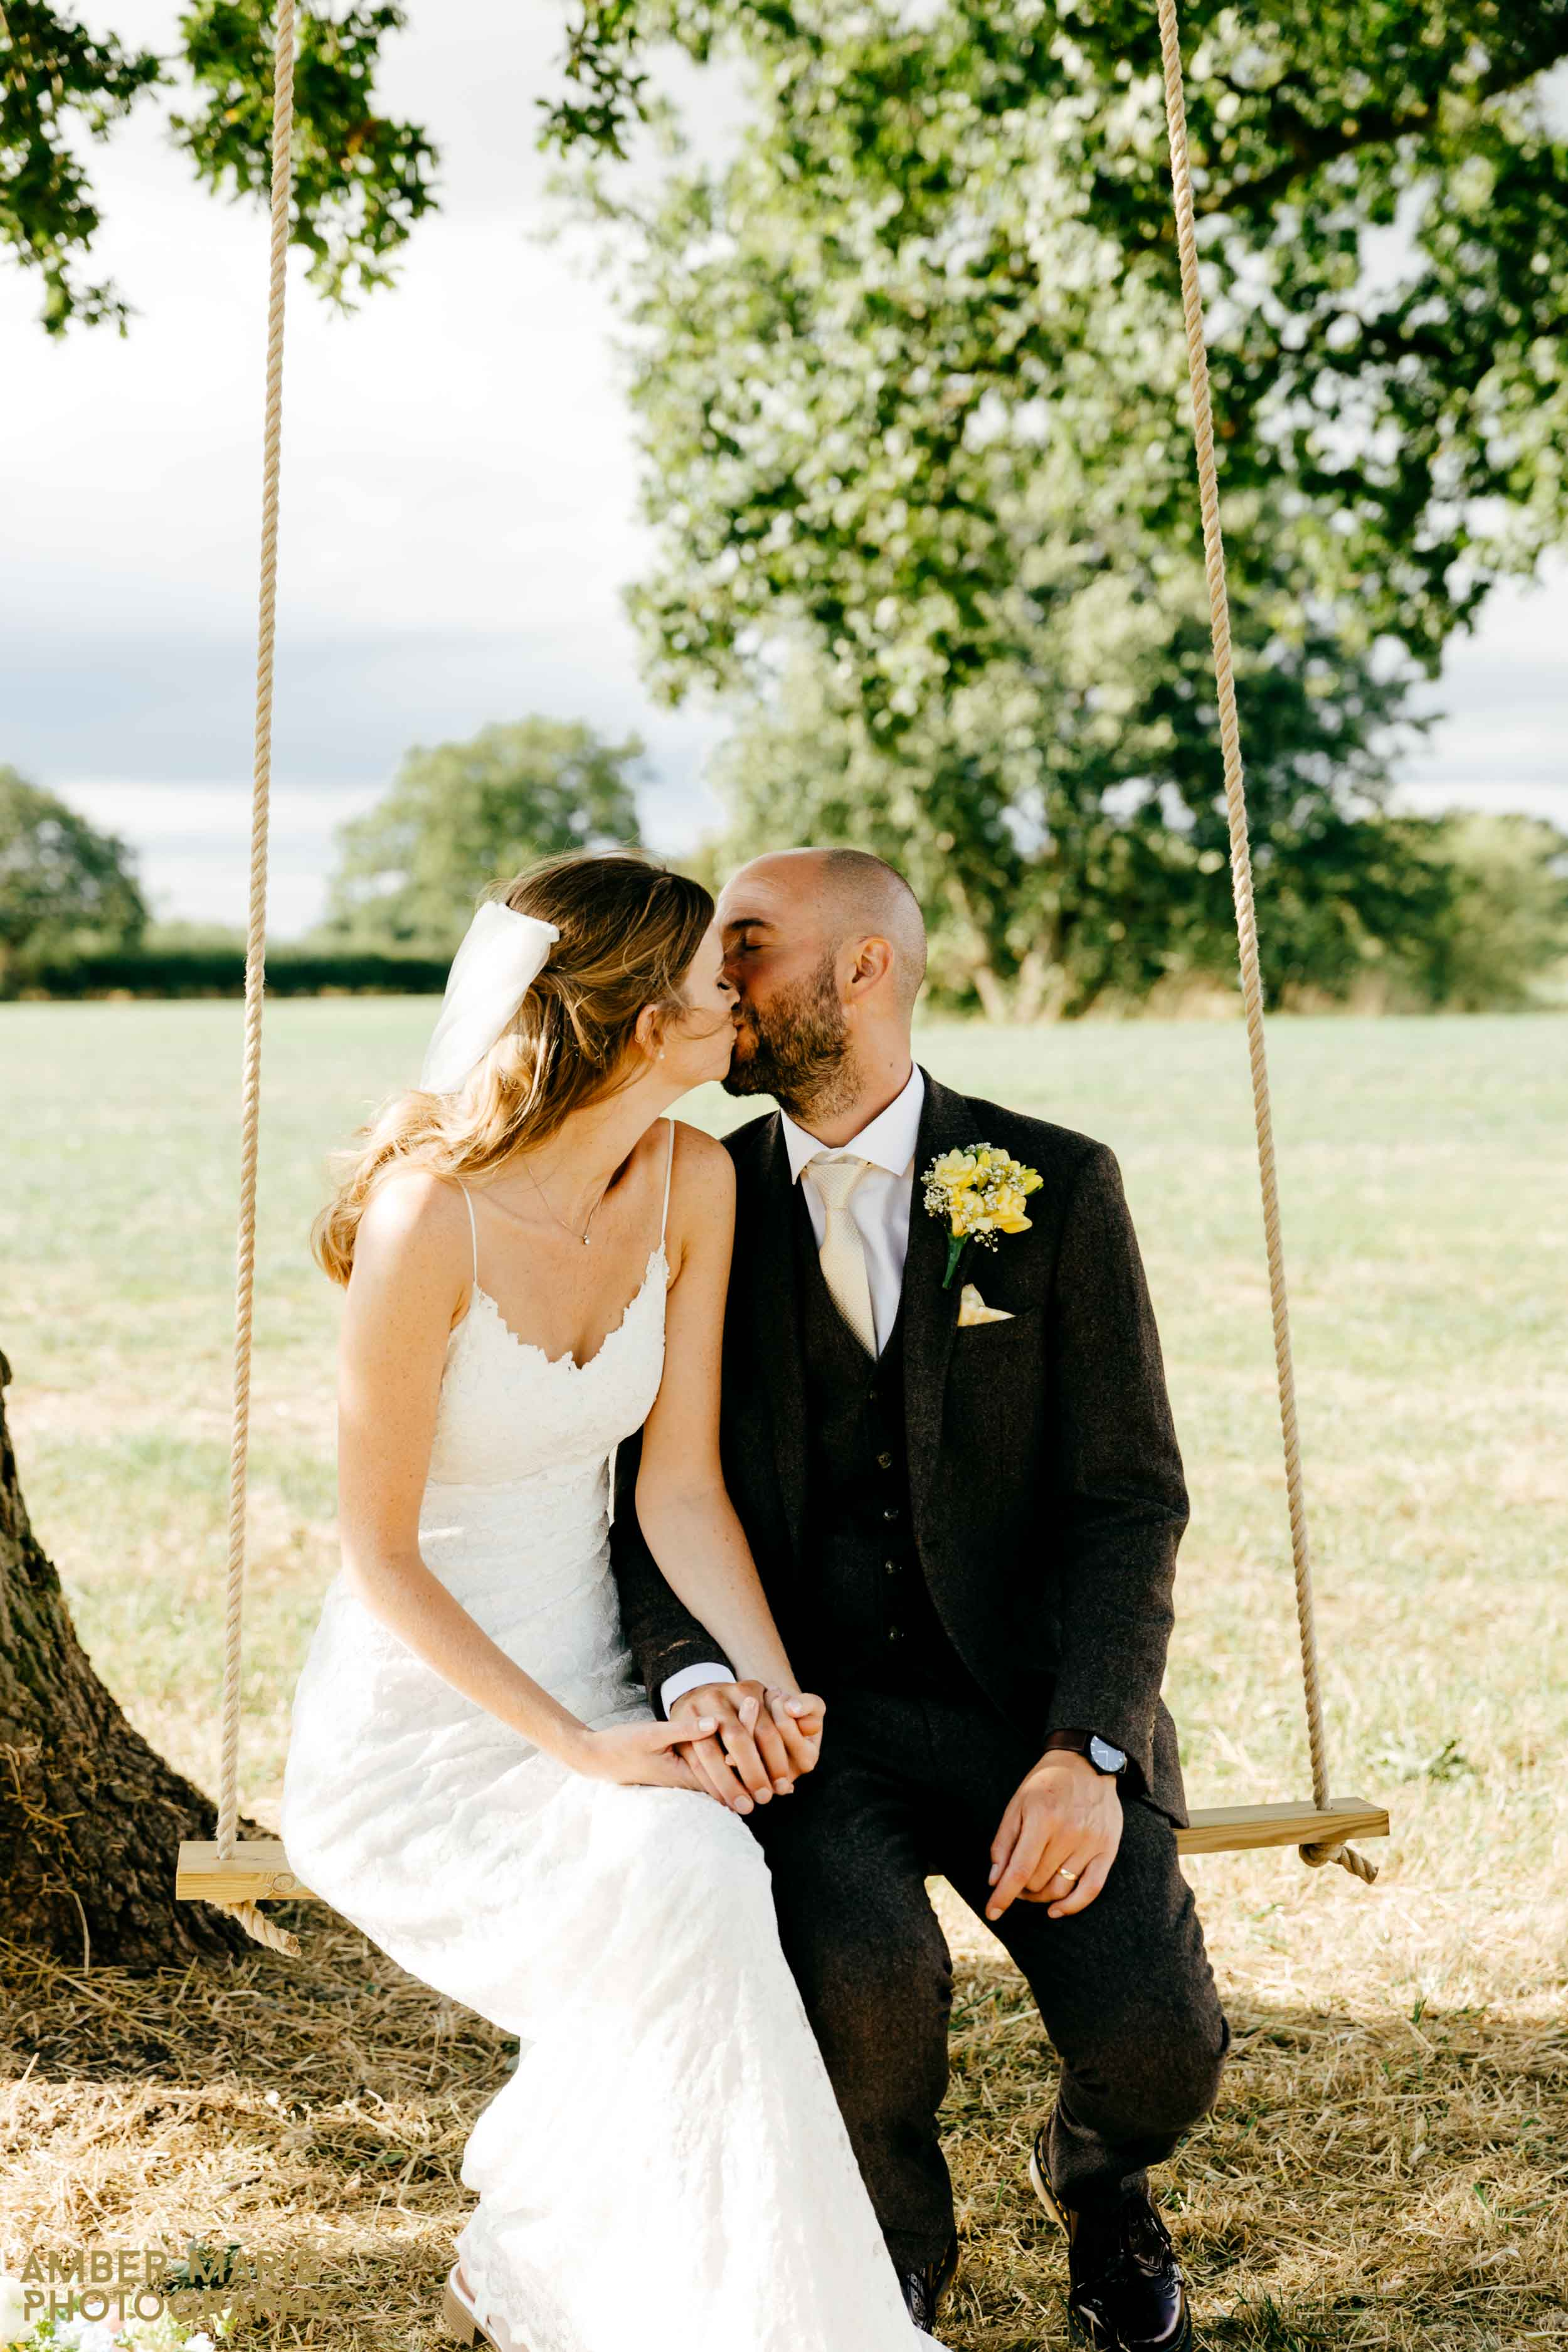 Fun Wedding photographer gloucestershire